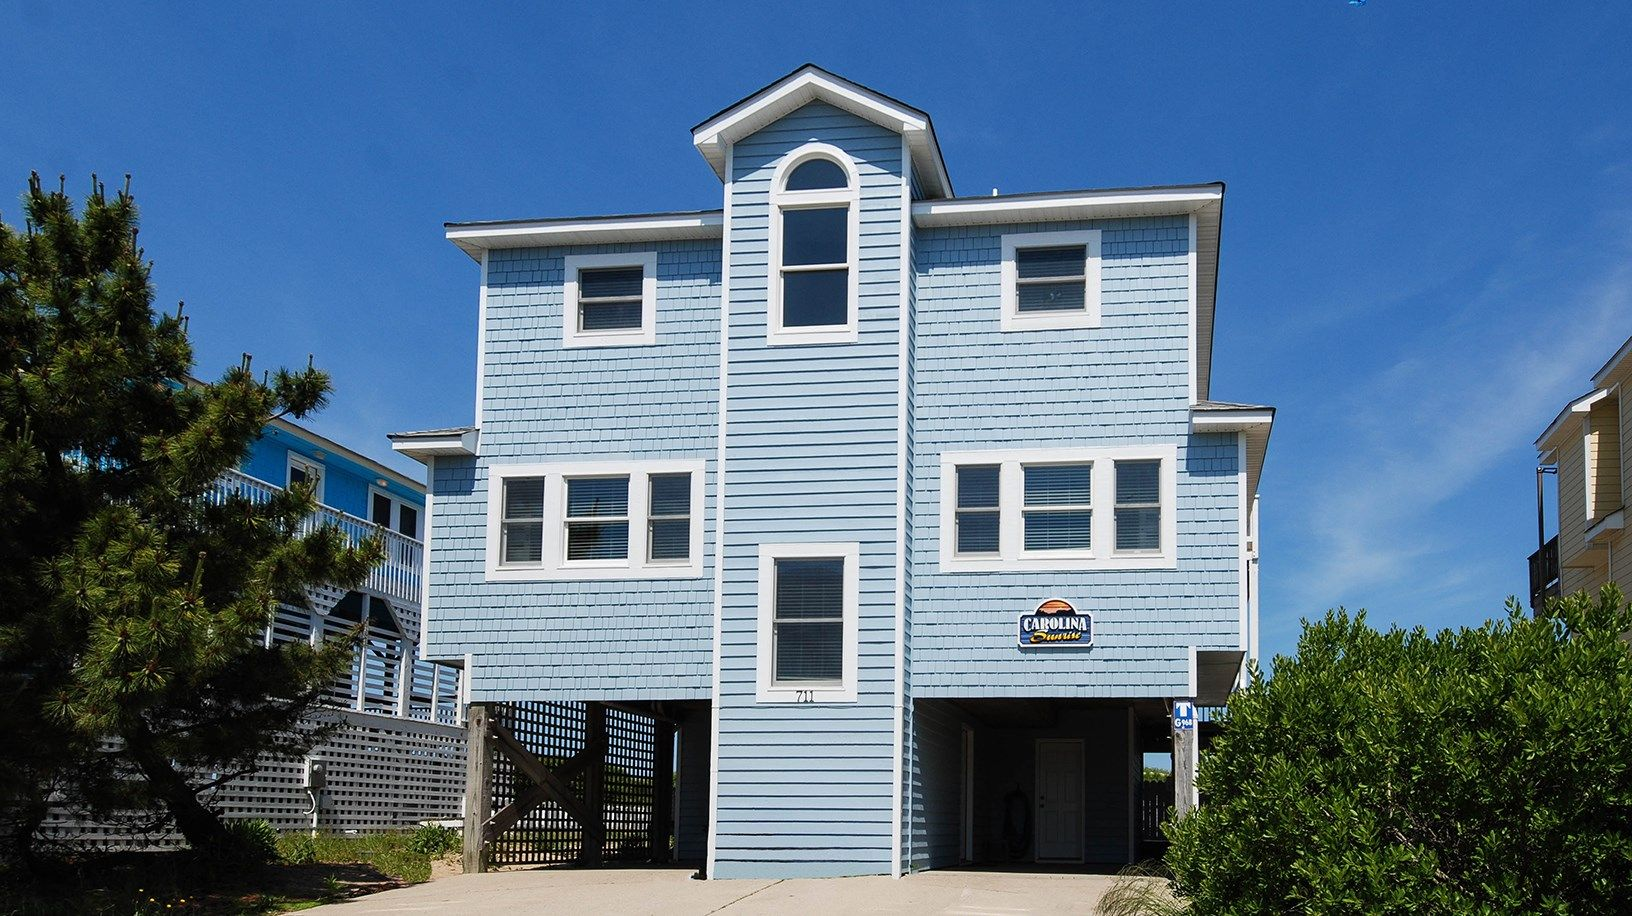 Twiddy Outer Banks Vacation Home Carolina Sunrise Corolla Oceanfront 6 Bedrooms